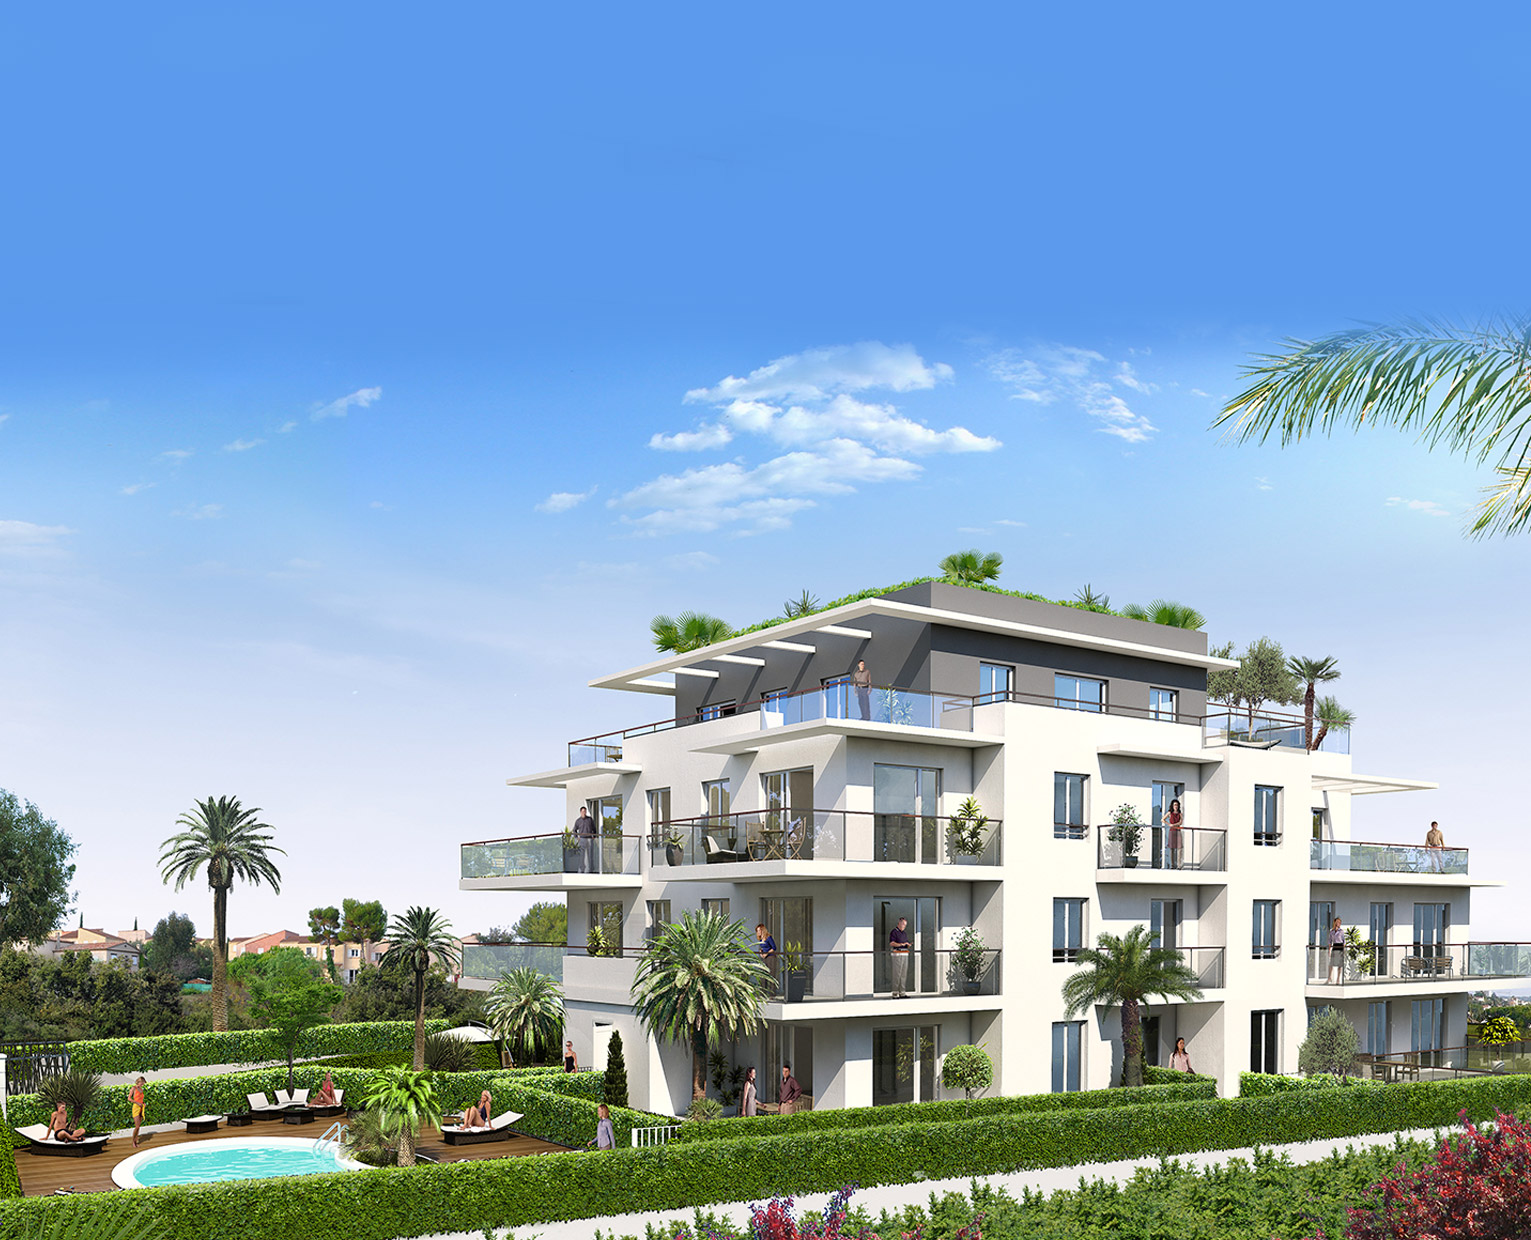 Appartements à Vendre Oressence Antibes